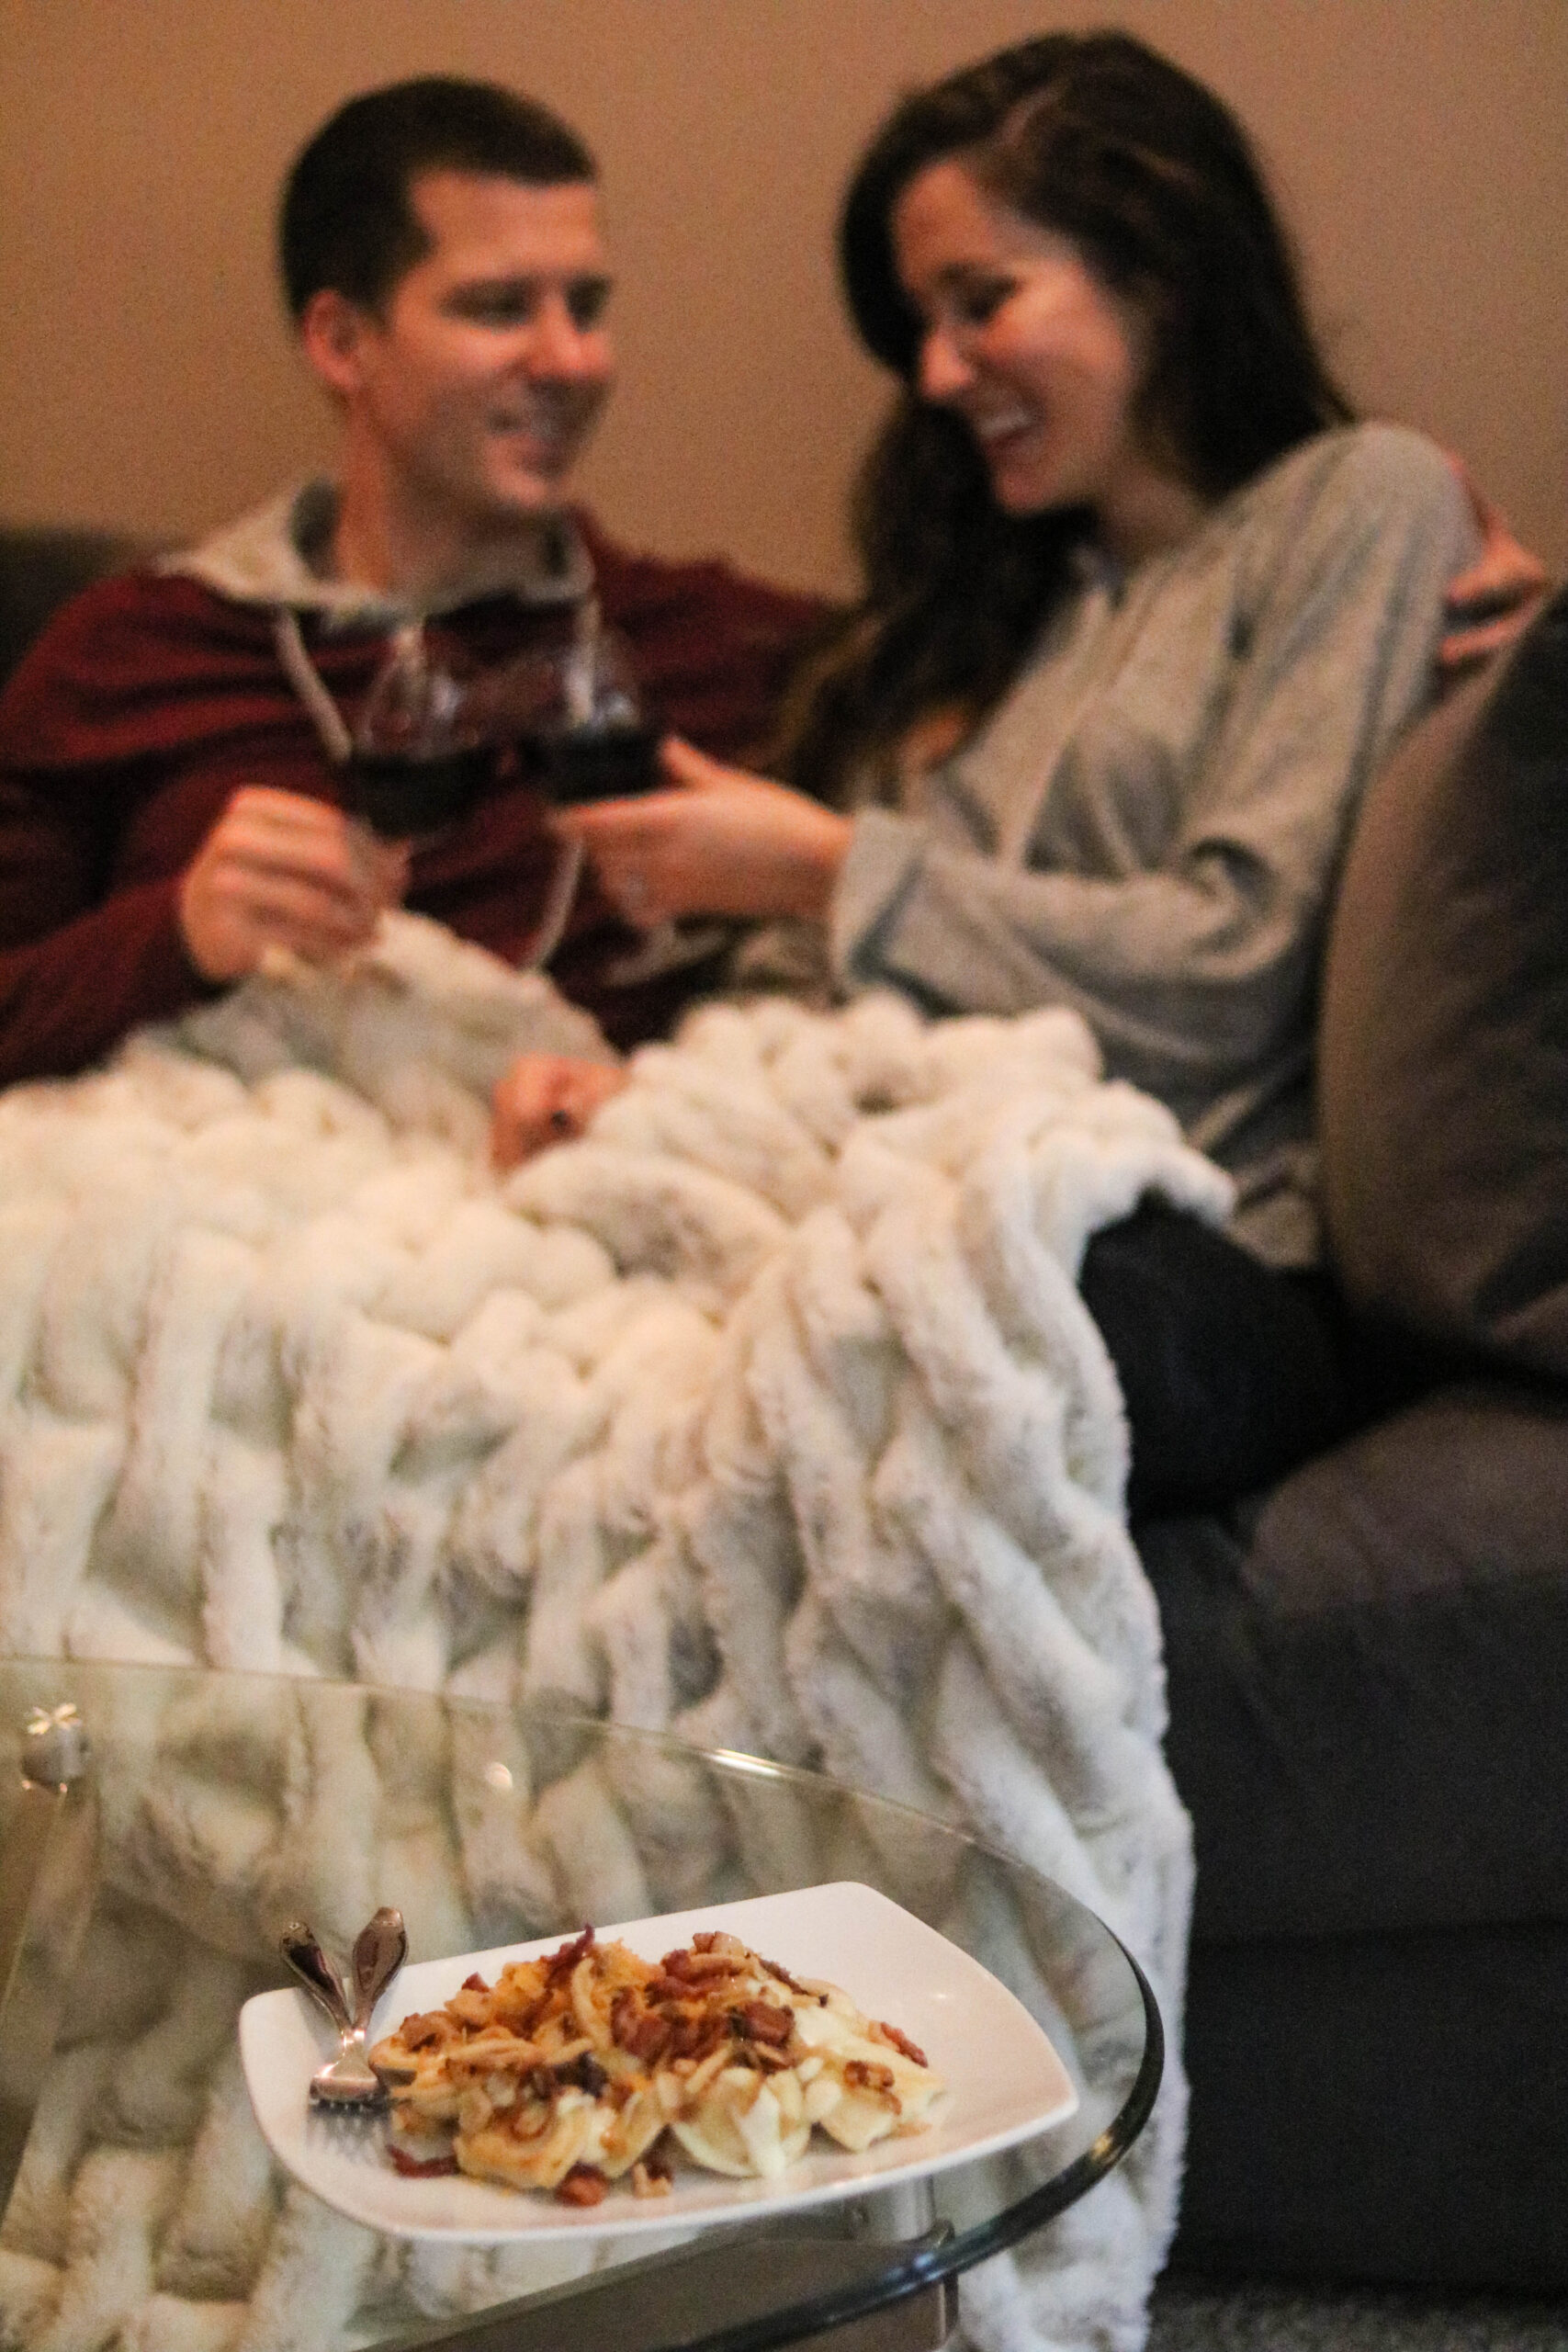 Easy Comfort Food + Playlist for a Cozy Date Night In